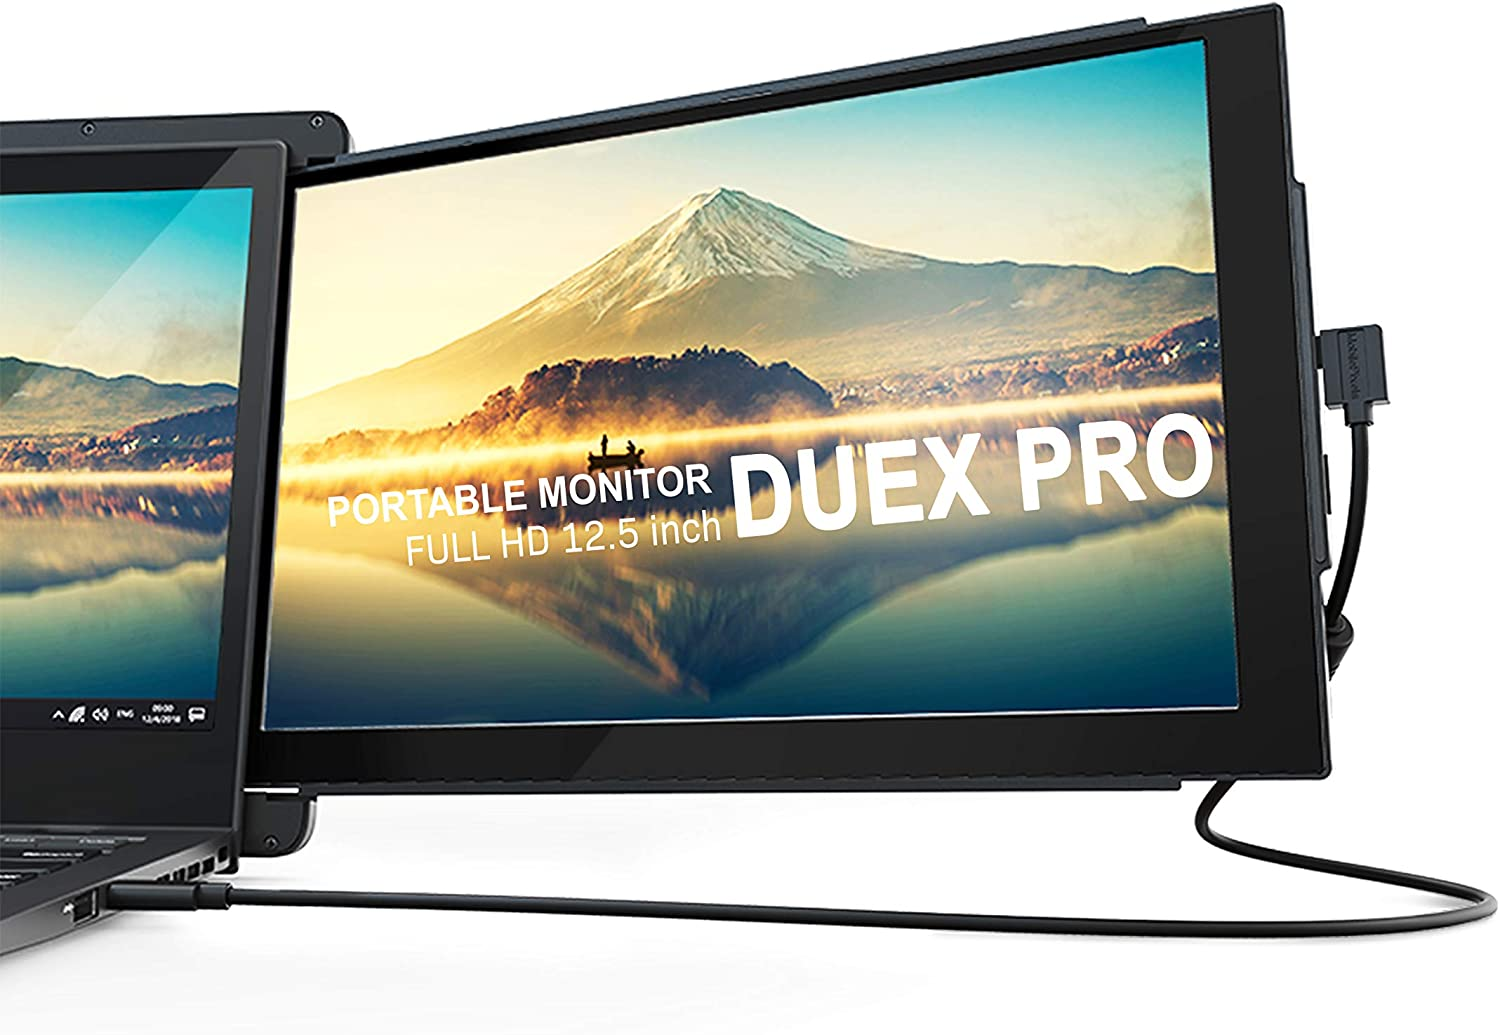 "Mobile Pixels Duex Pro - Upgraded 2.0 Portable Monitor for Laptops - 12.5"" Full HD USB Screen Plug and Play"